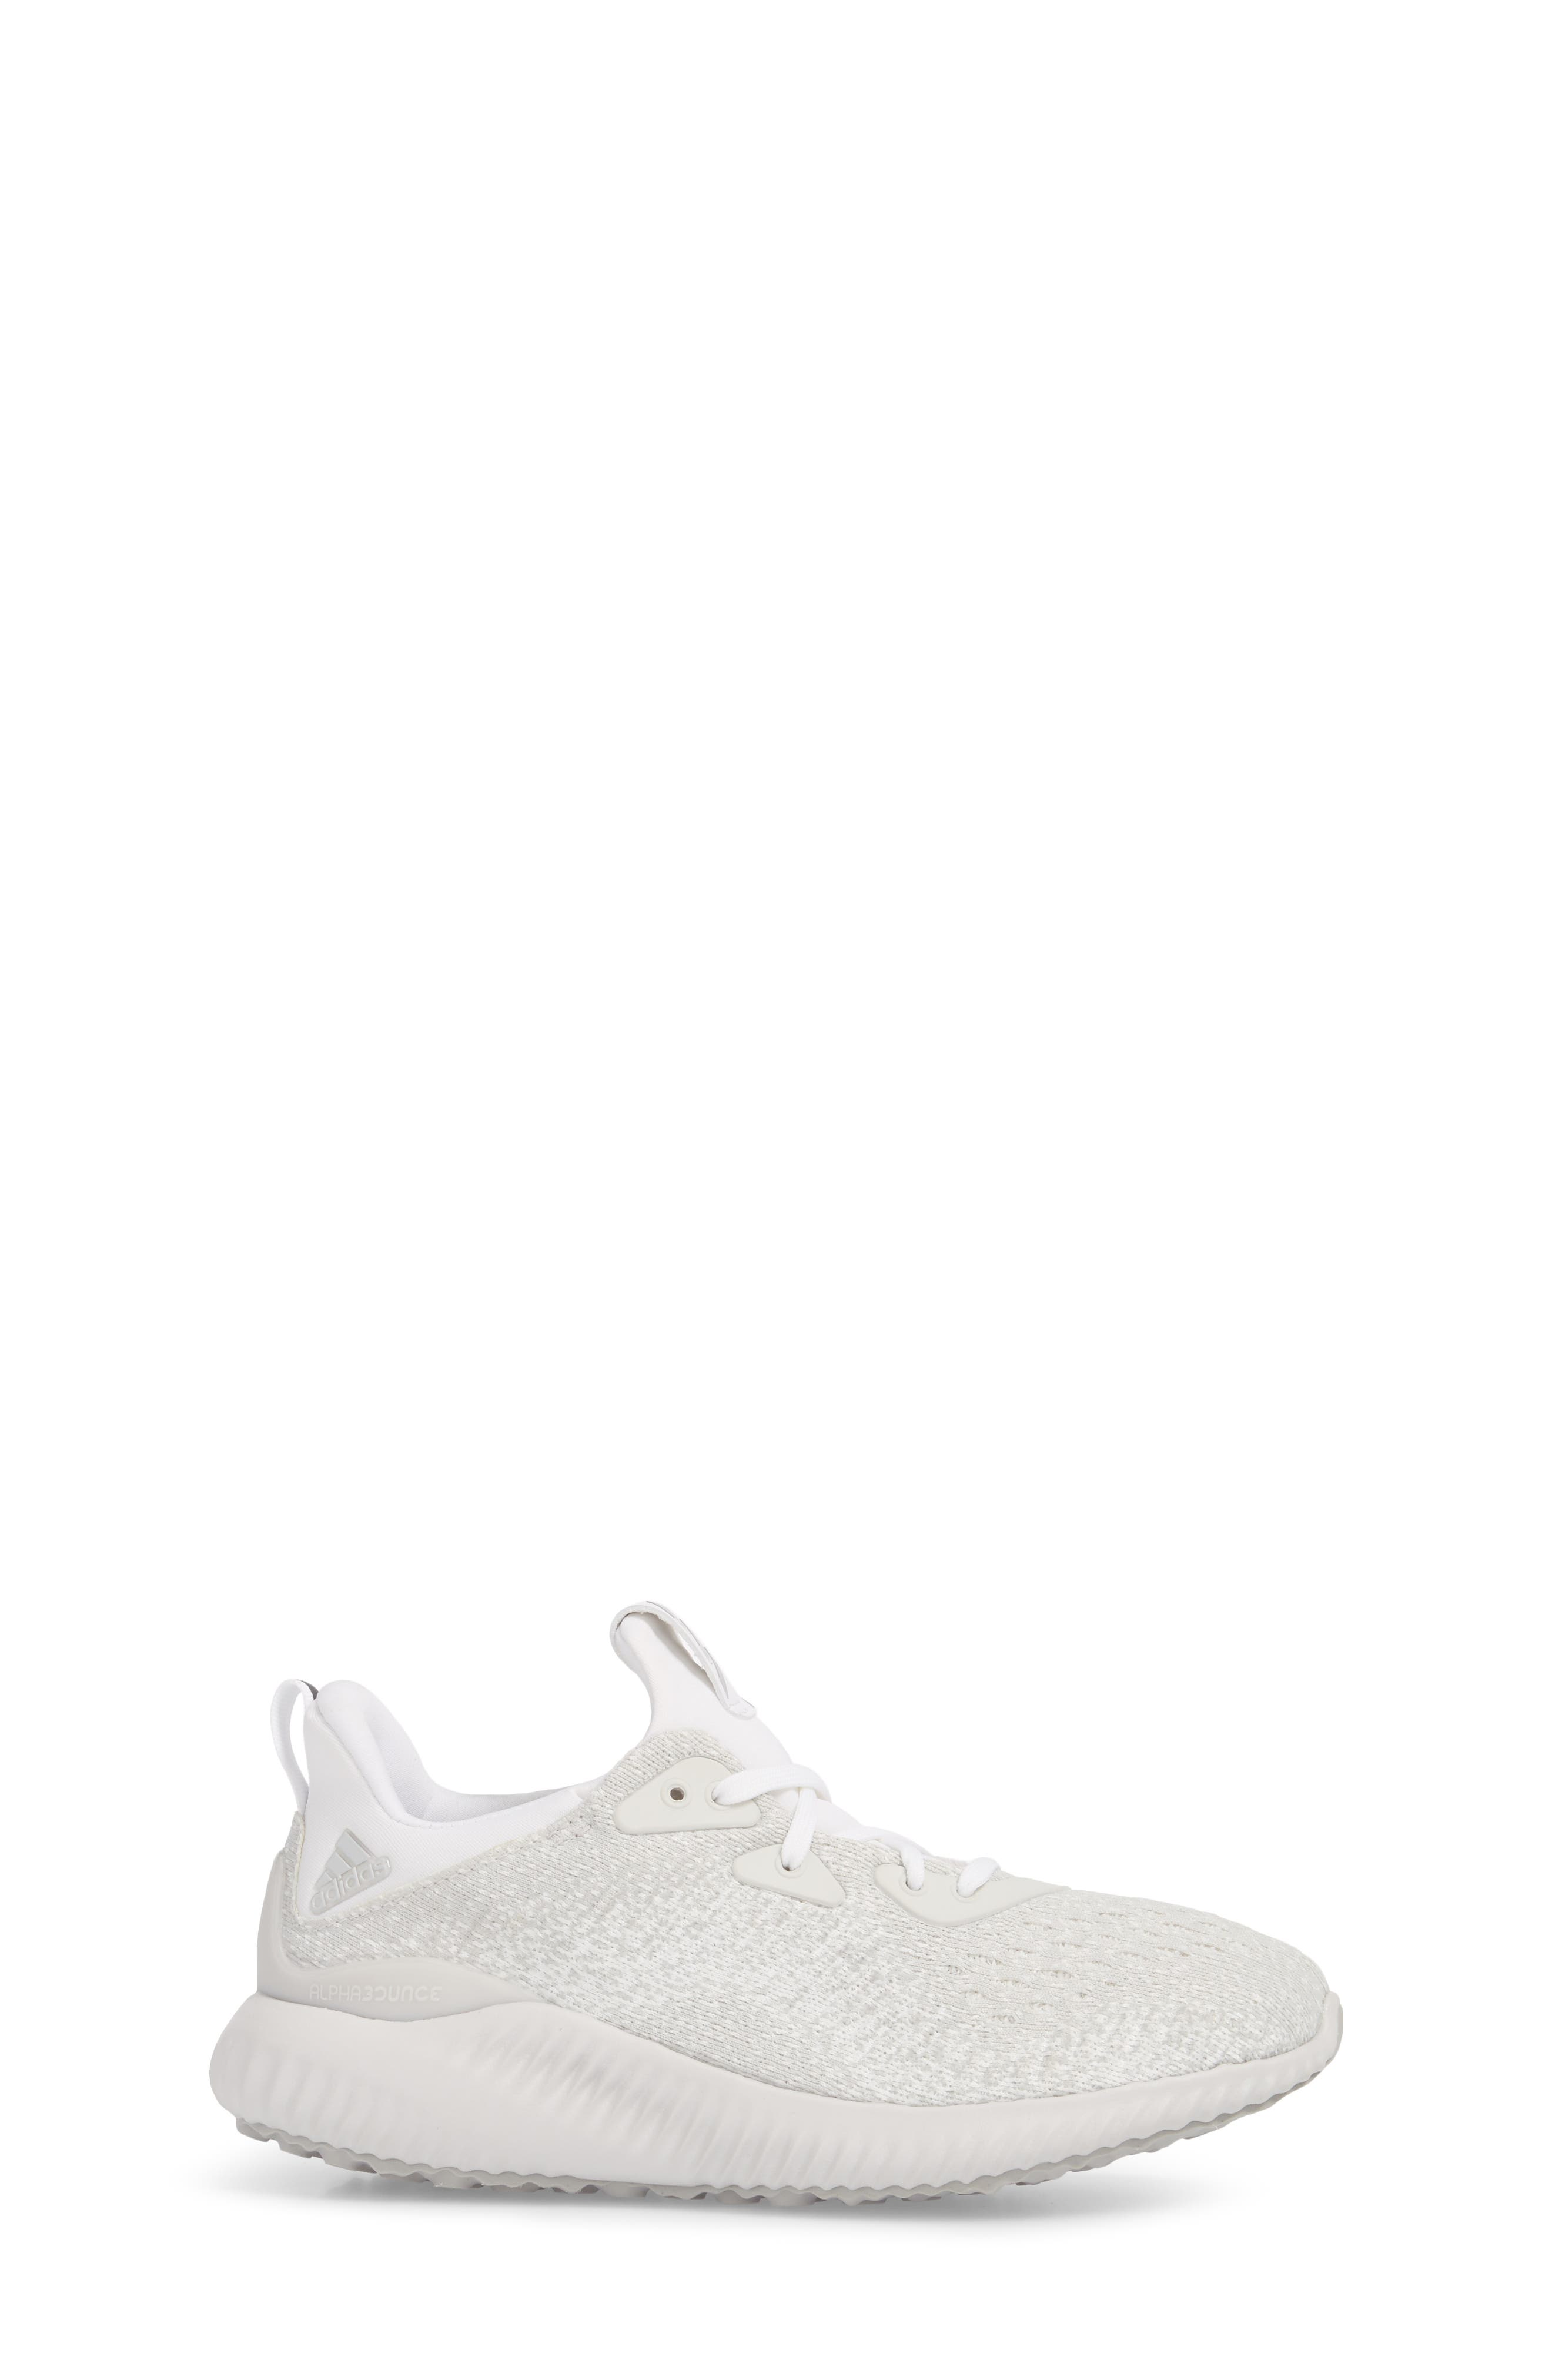 AlphaBounce EM Running Shoe,                             Alternate thumbnail 3, color,                             Grey / Silver Met / Non-Dyed